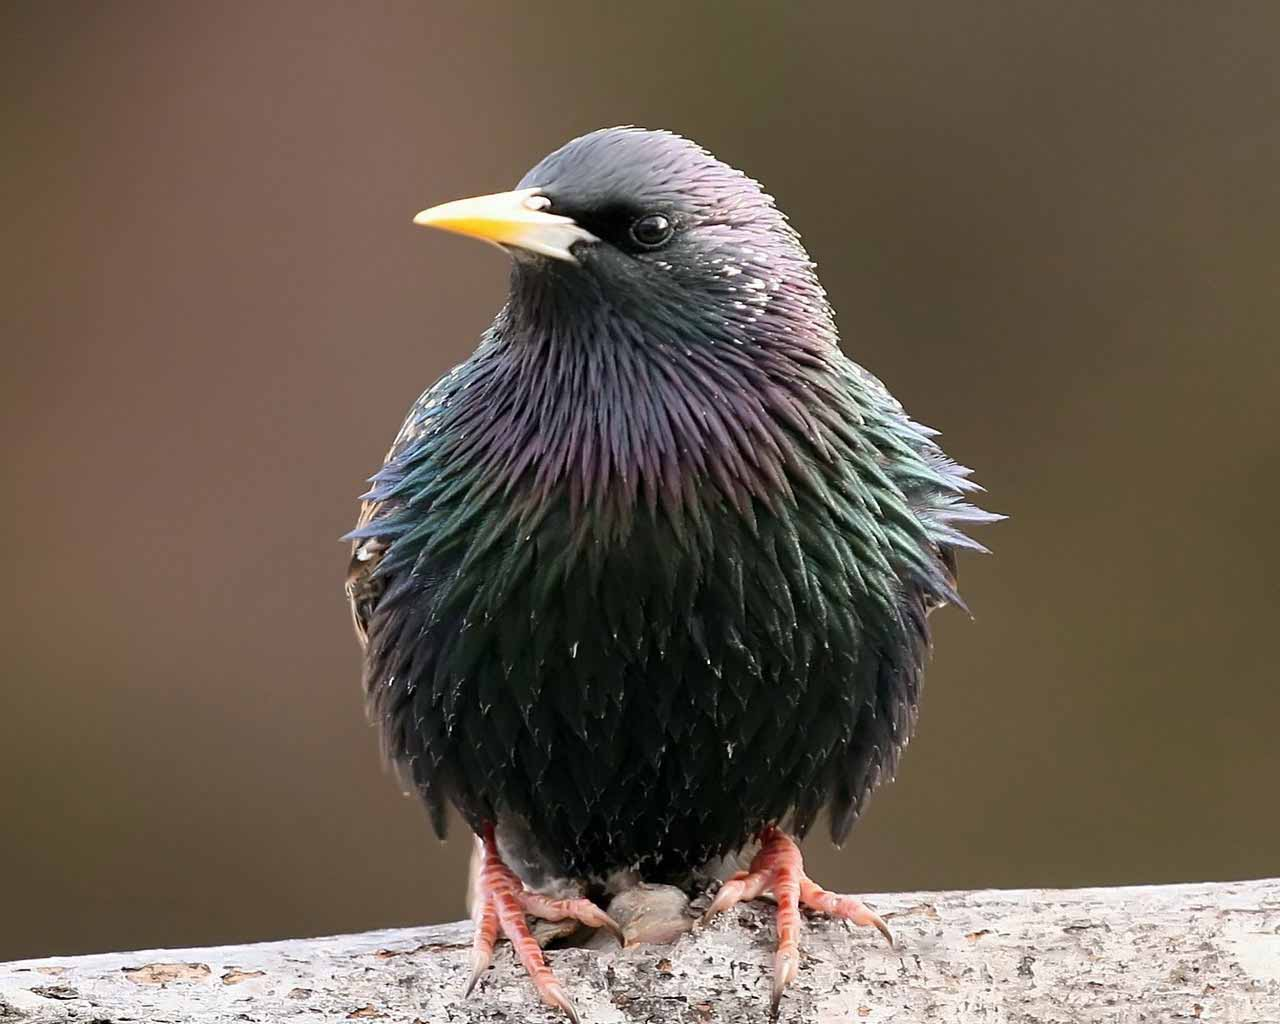 New 3d Wallpapers Free Download For Mobile Hd Wallpapers Starling Bird Wallpapers